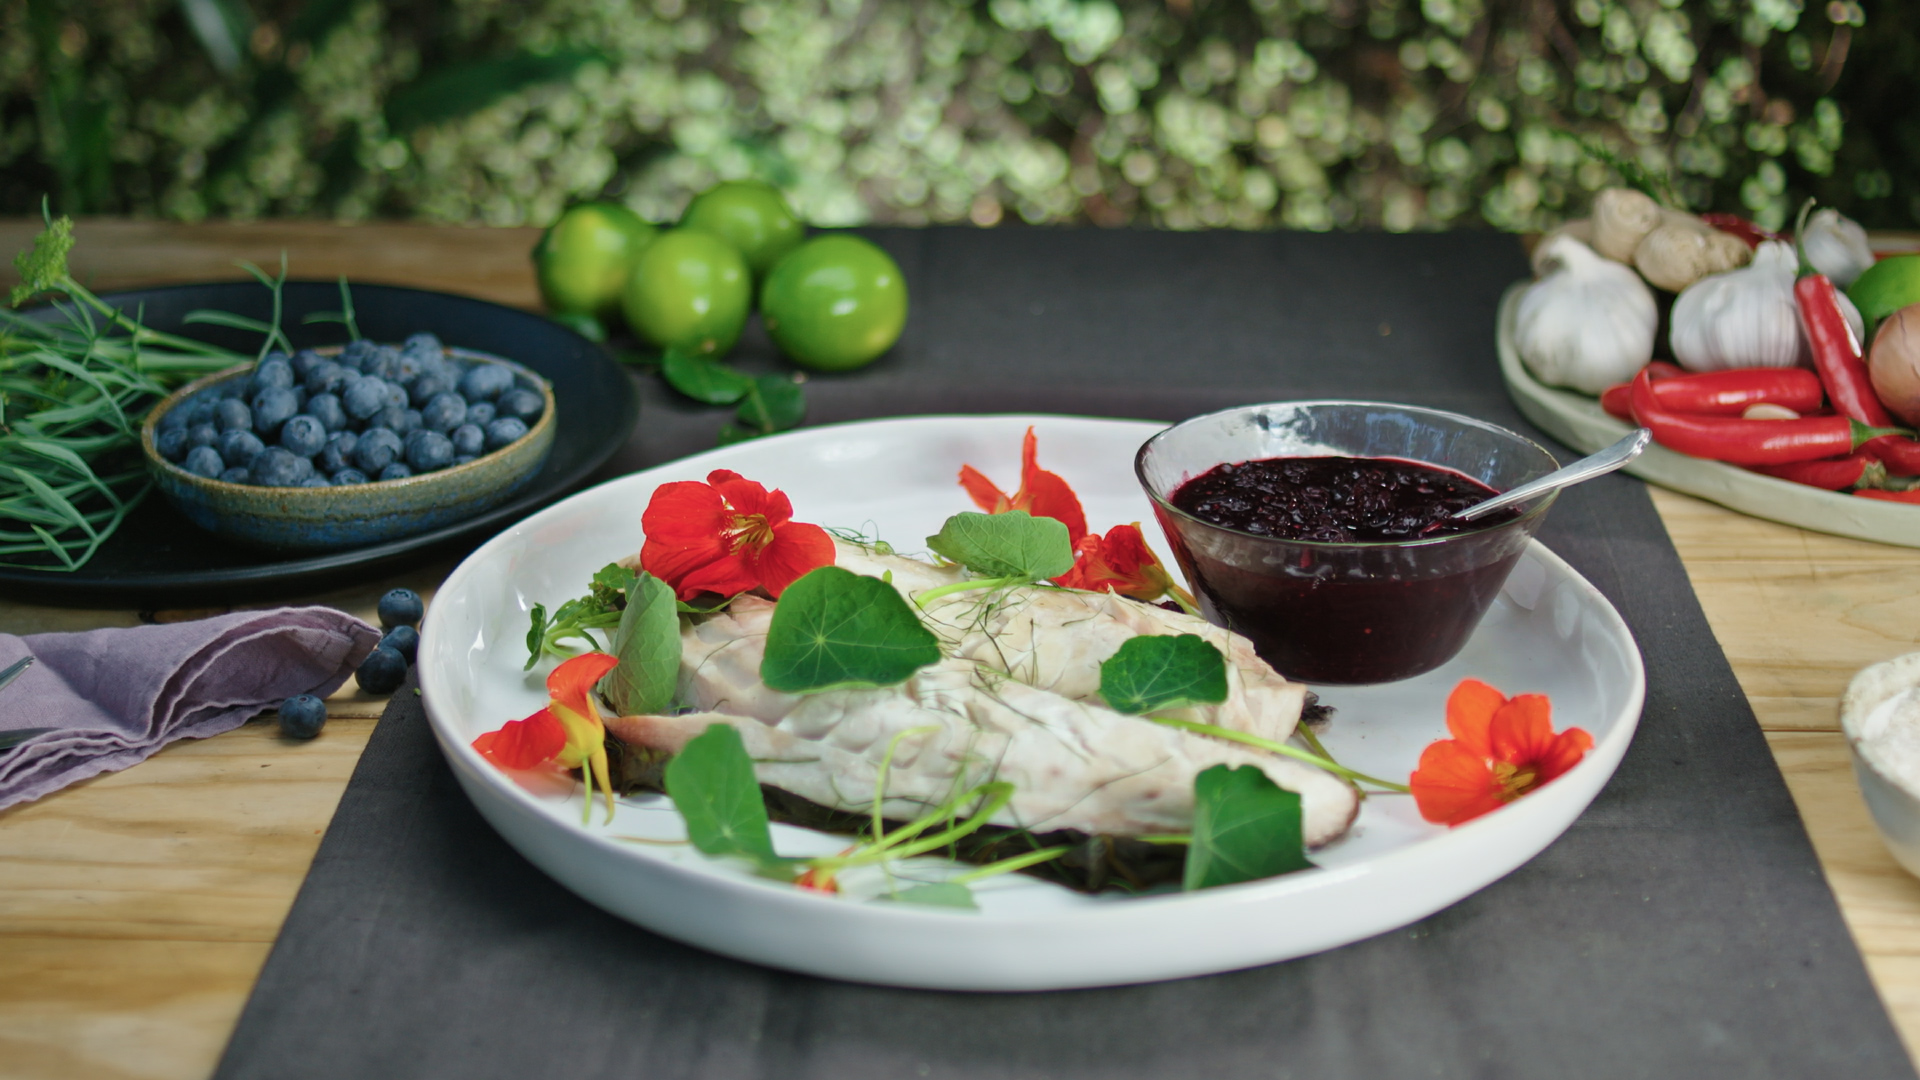 Chili Blueberry Jam with Steamed Fish